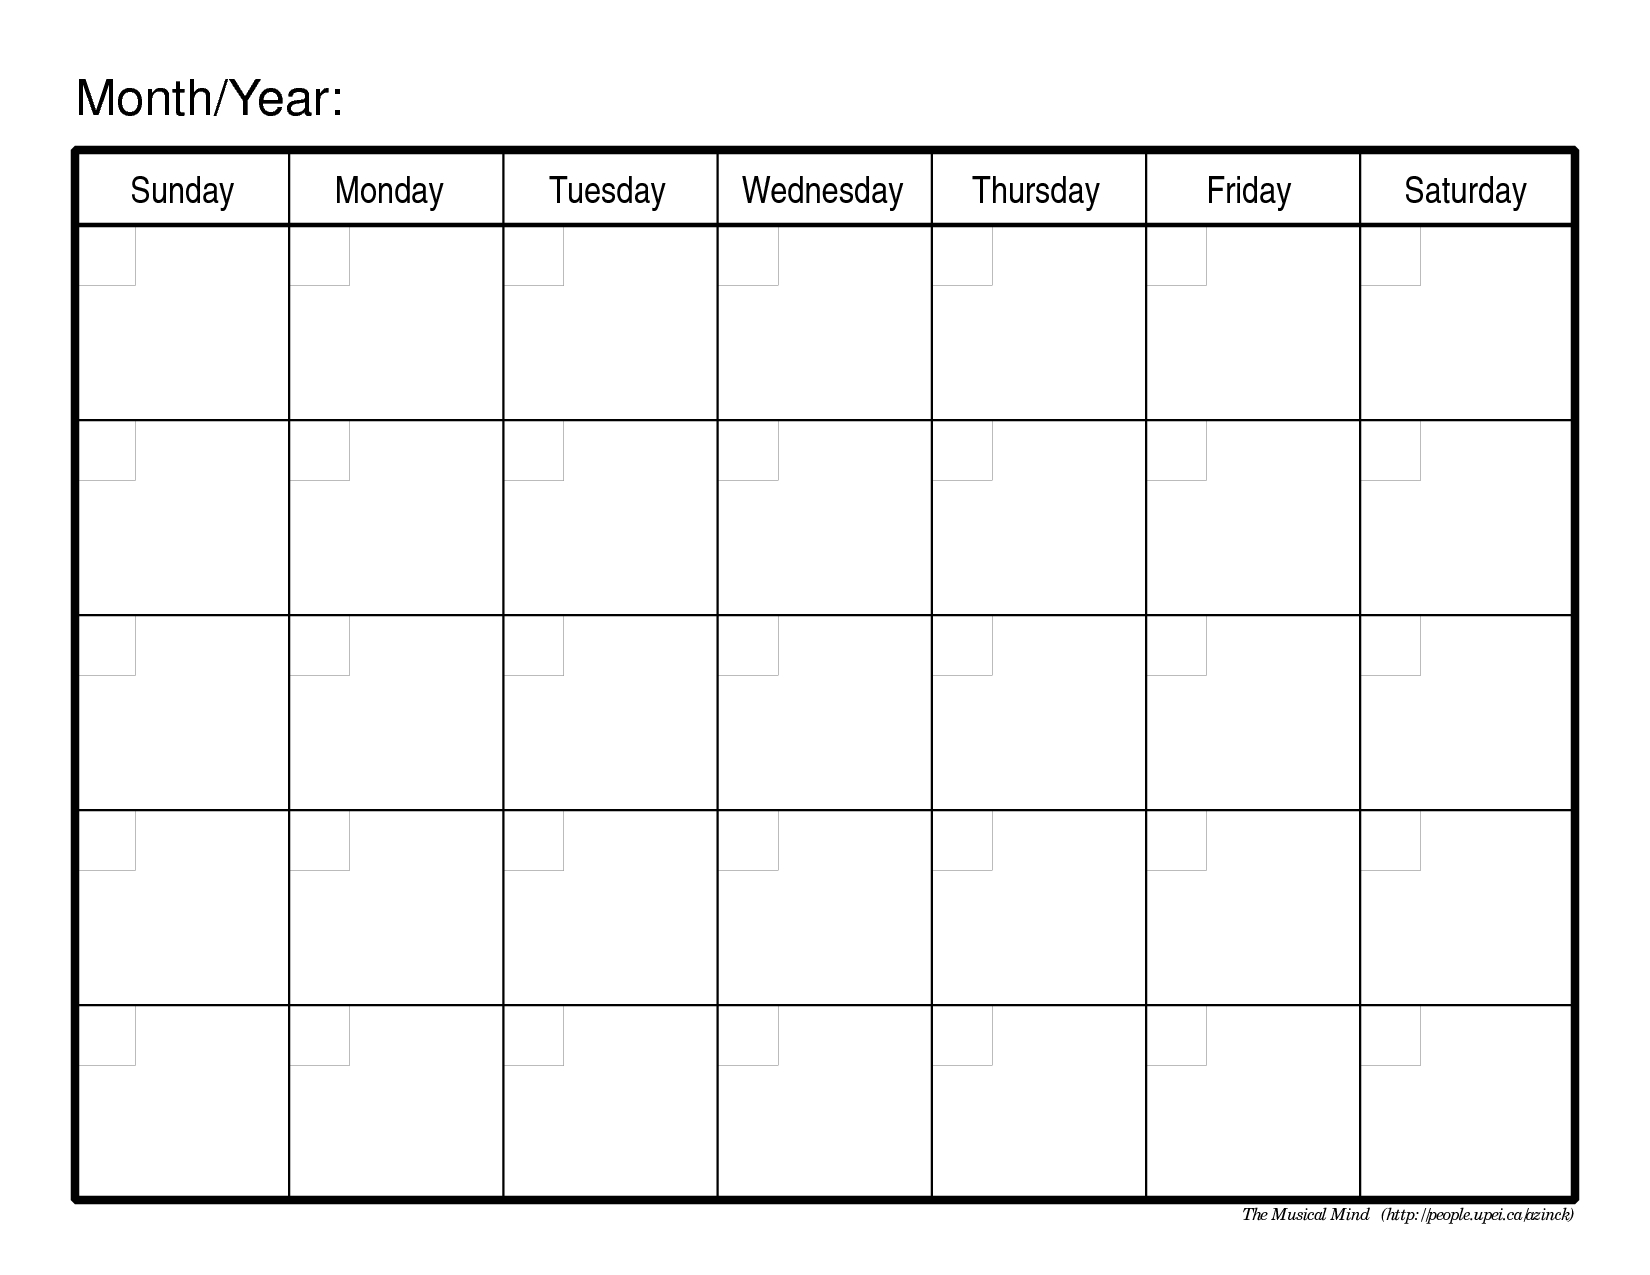 Calendar Templates Printable Free Fieldstation.co | Self Discovery in Free Printable Preschool Handprint Calendar Templates